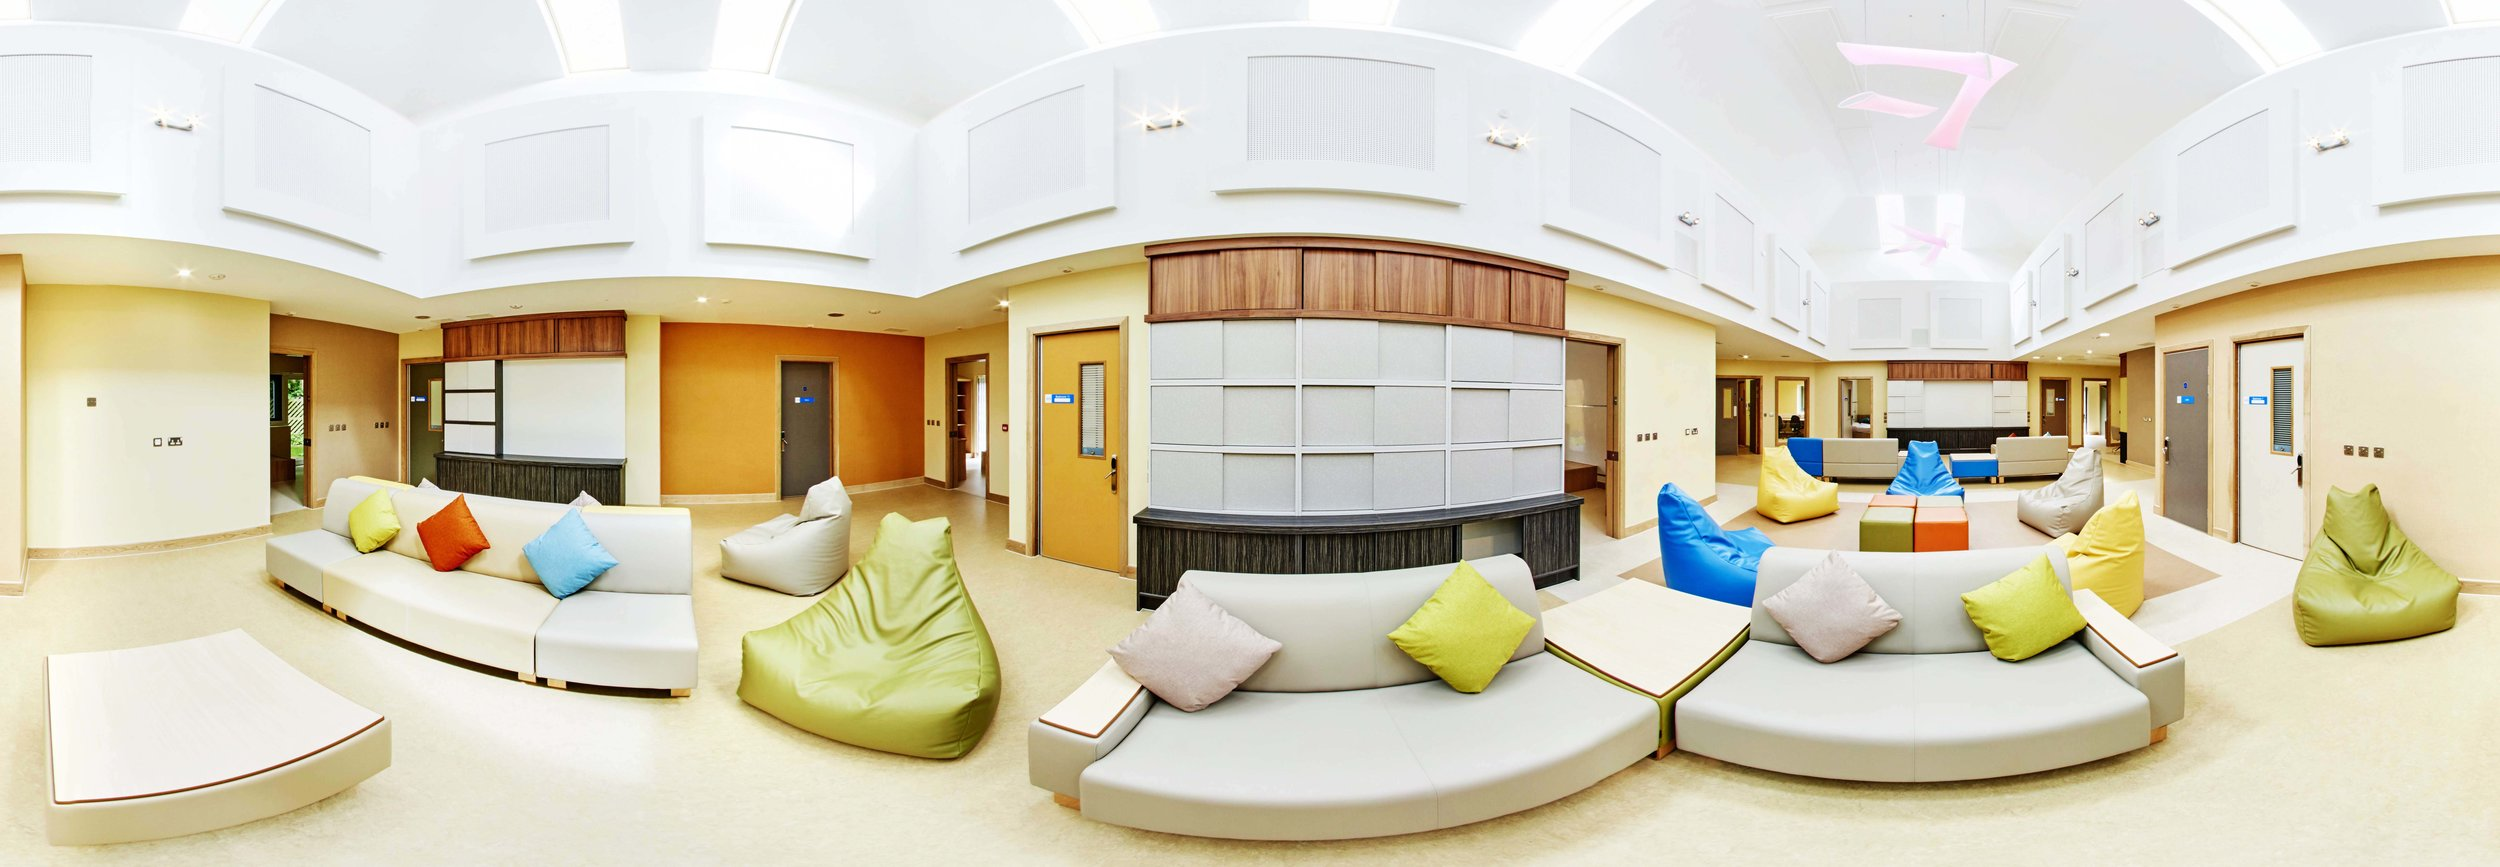 The Irwin Unit - Birmingham childrens hospital  Following a £2m renovation I was asked to produce a 360 tour at the Irwin Unit for c hildren and young people who are treated for eating disorders. The brighter and more spacious surroundings made for great location, perfect for a 360 tour.